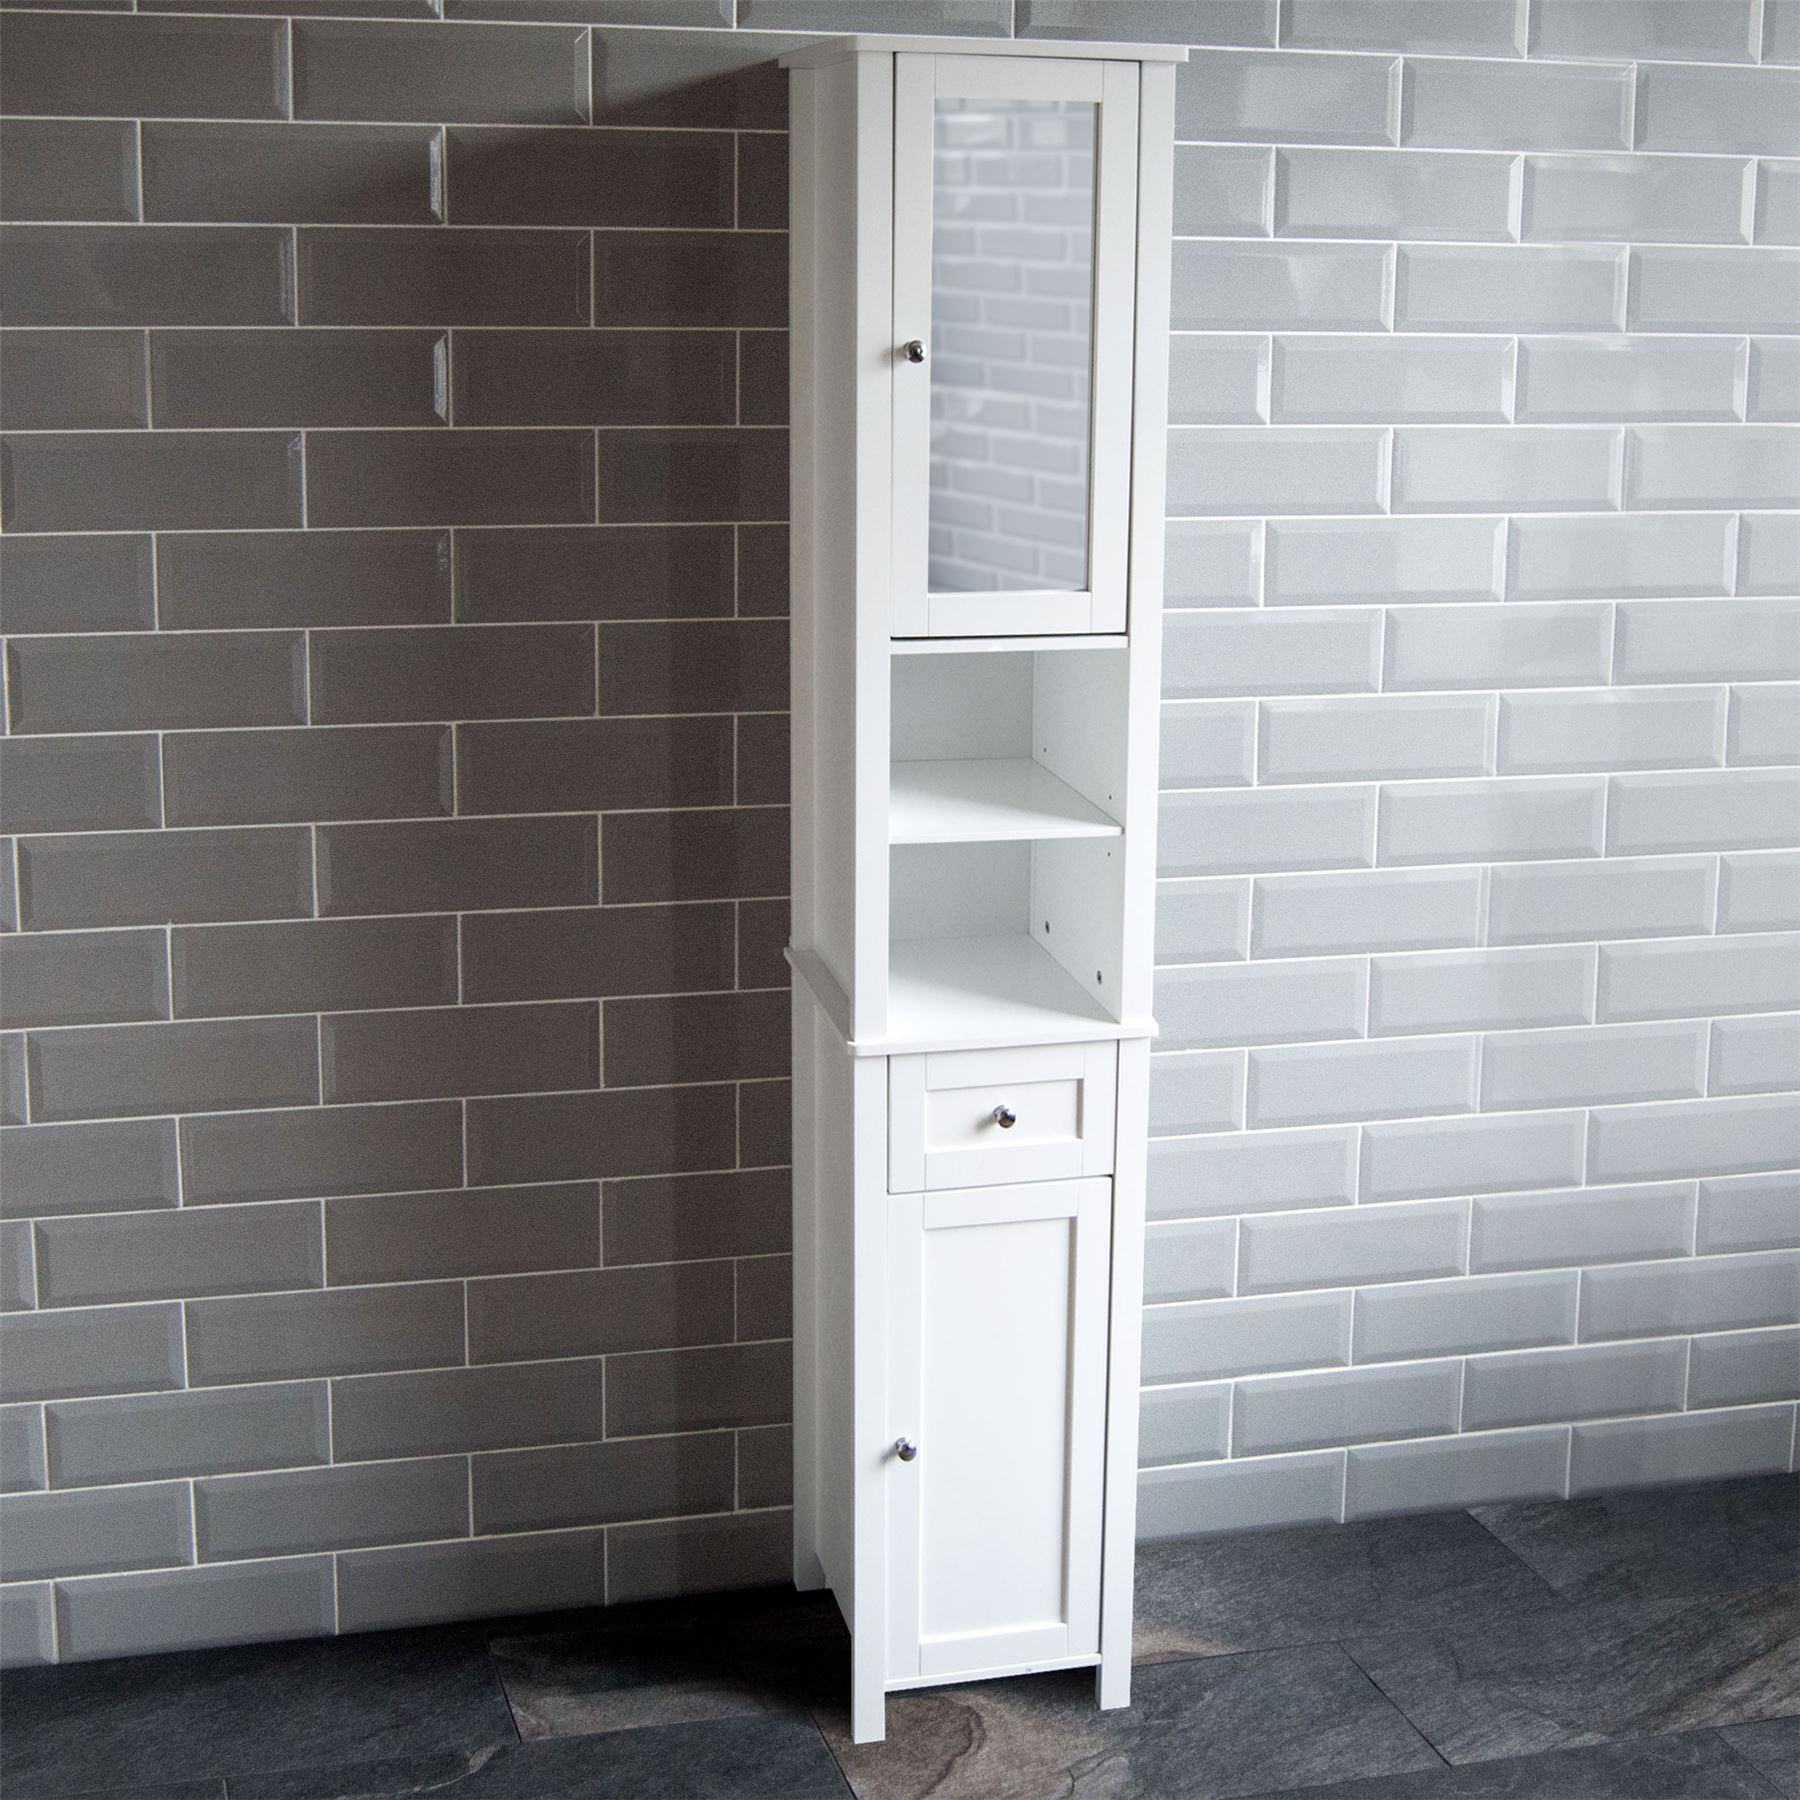 Details About Milano Tall Bathroom Cabinet Mirrored Door Cupboard Storage Shelf Shelving Unit for measurements 1800 X 1800